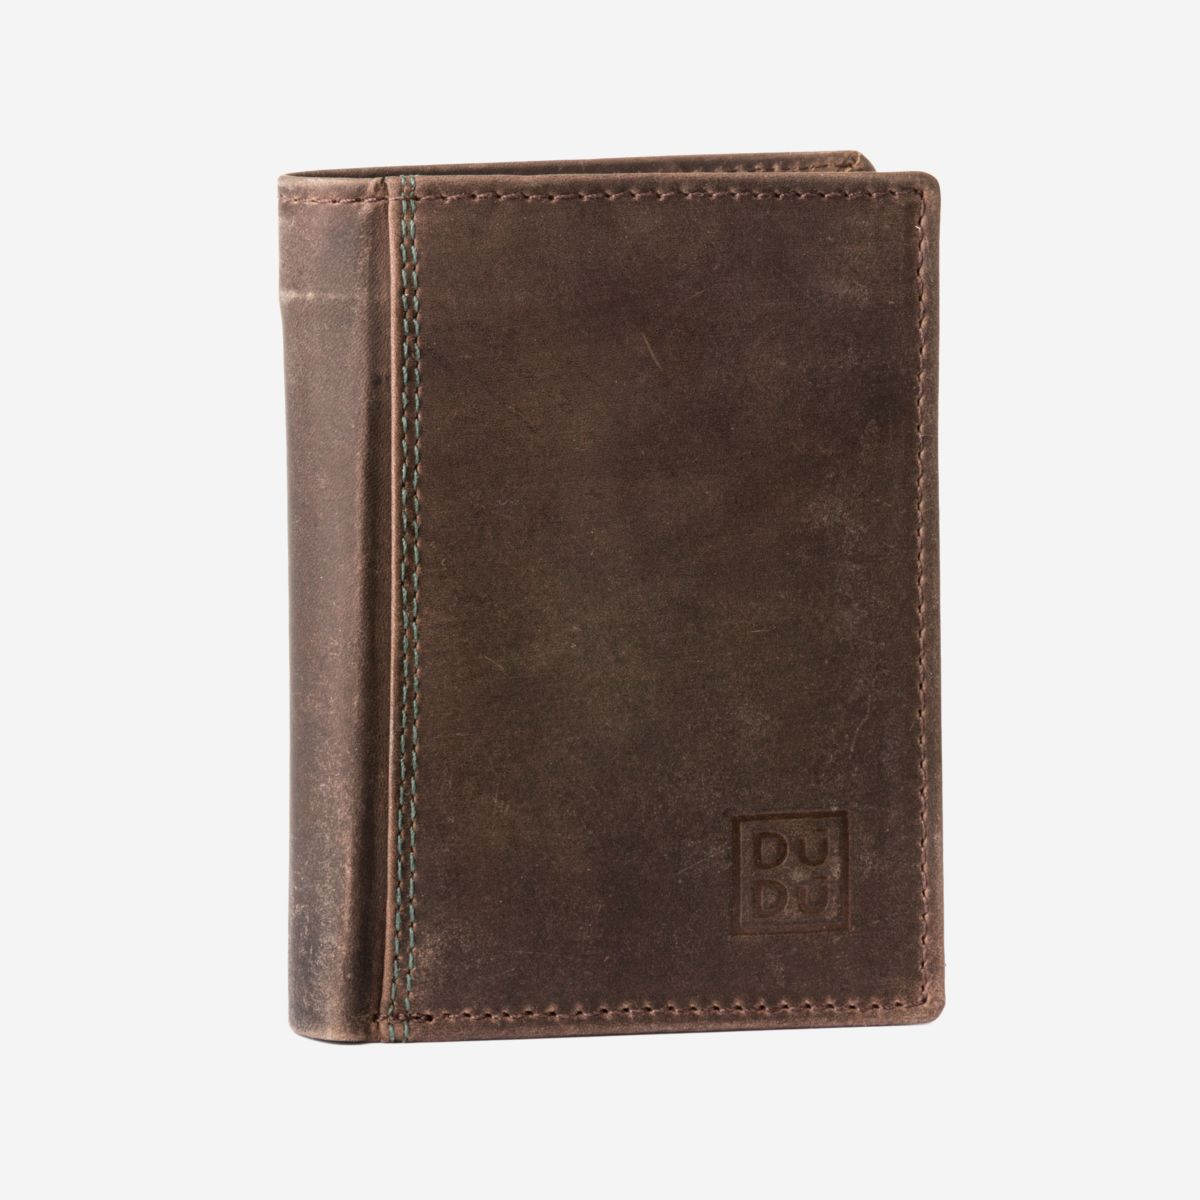 DuDu Small Mans Billfold Vertical Wallet  - Dark Brown